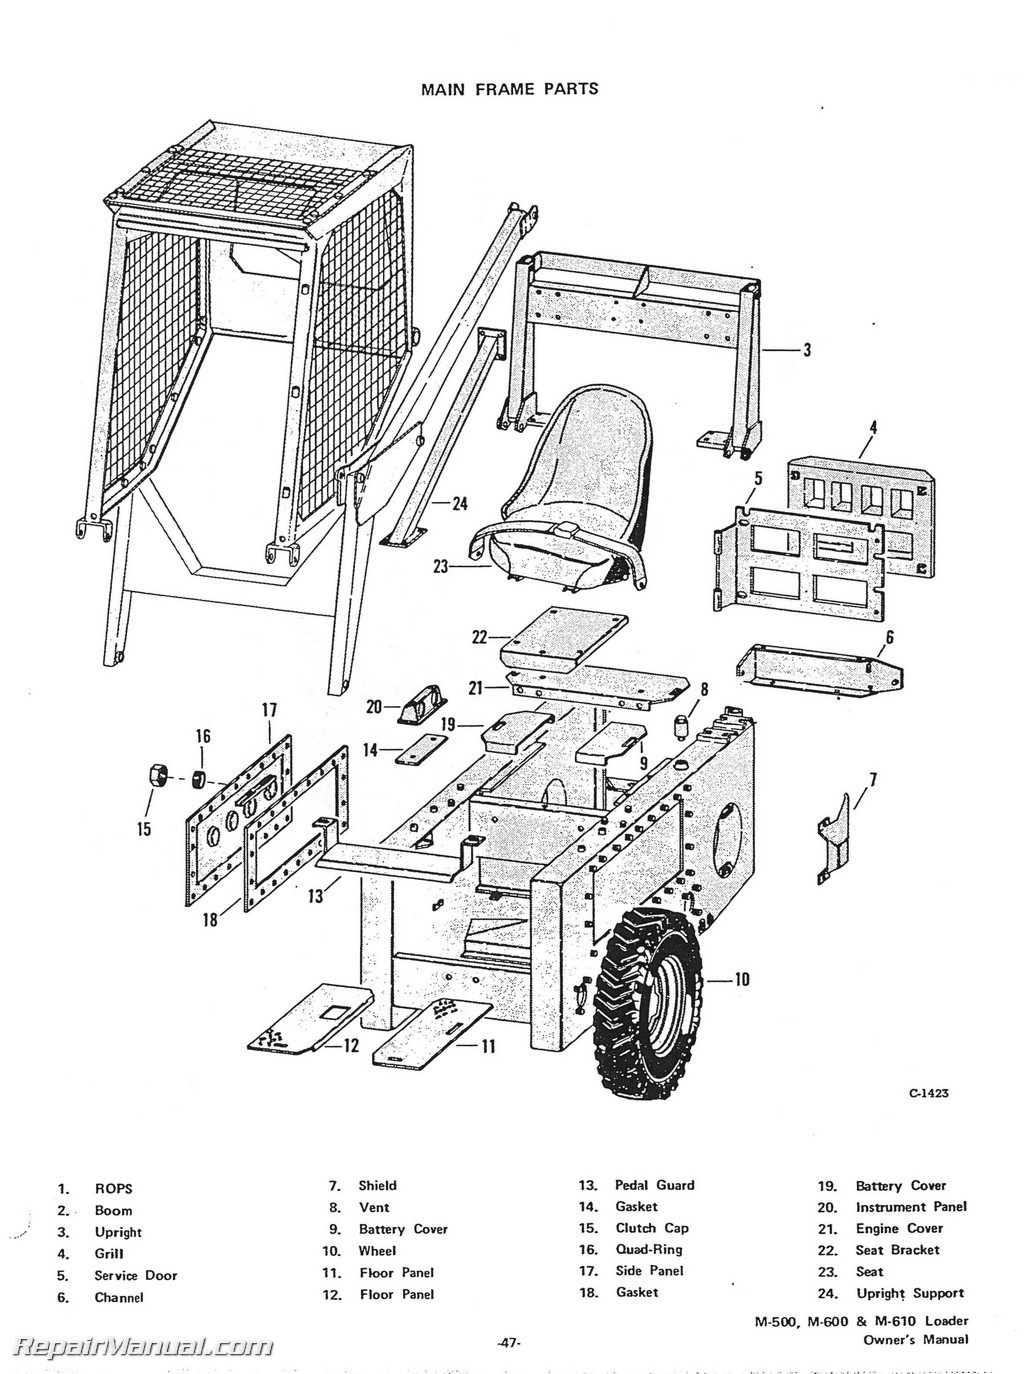 610 bobcat wiring diagram rh homesecurity press Melroe Bobcat 610 Parts Melroe Bobcat 610 Drive Belt